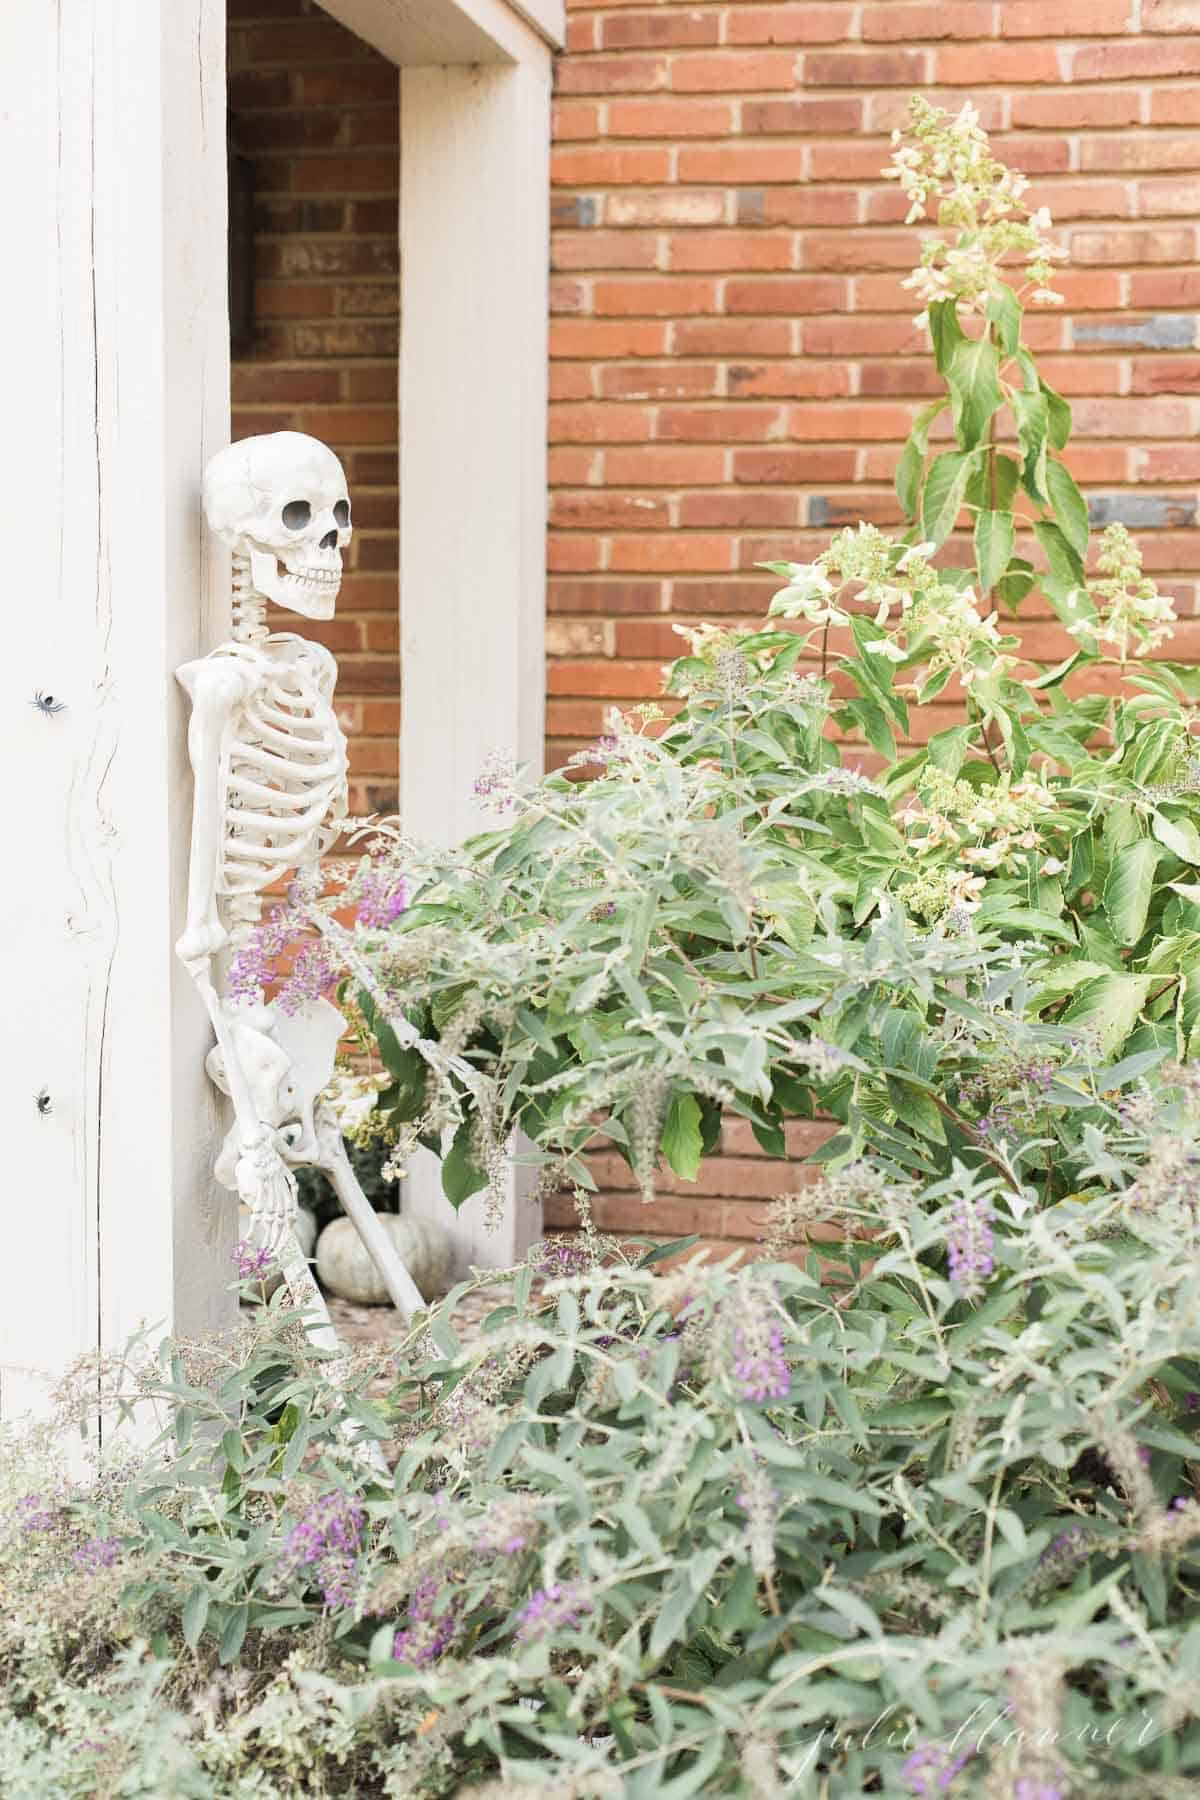 A life size skeleton leaning against a porch pillar for Halloween front porch decor.